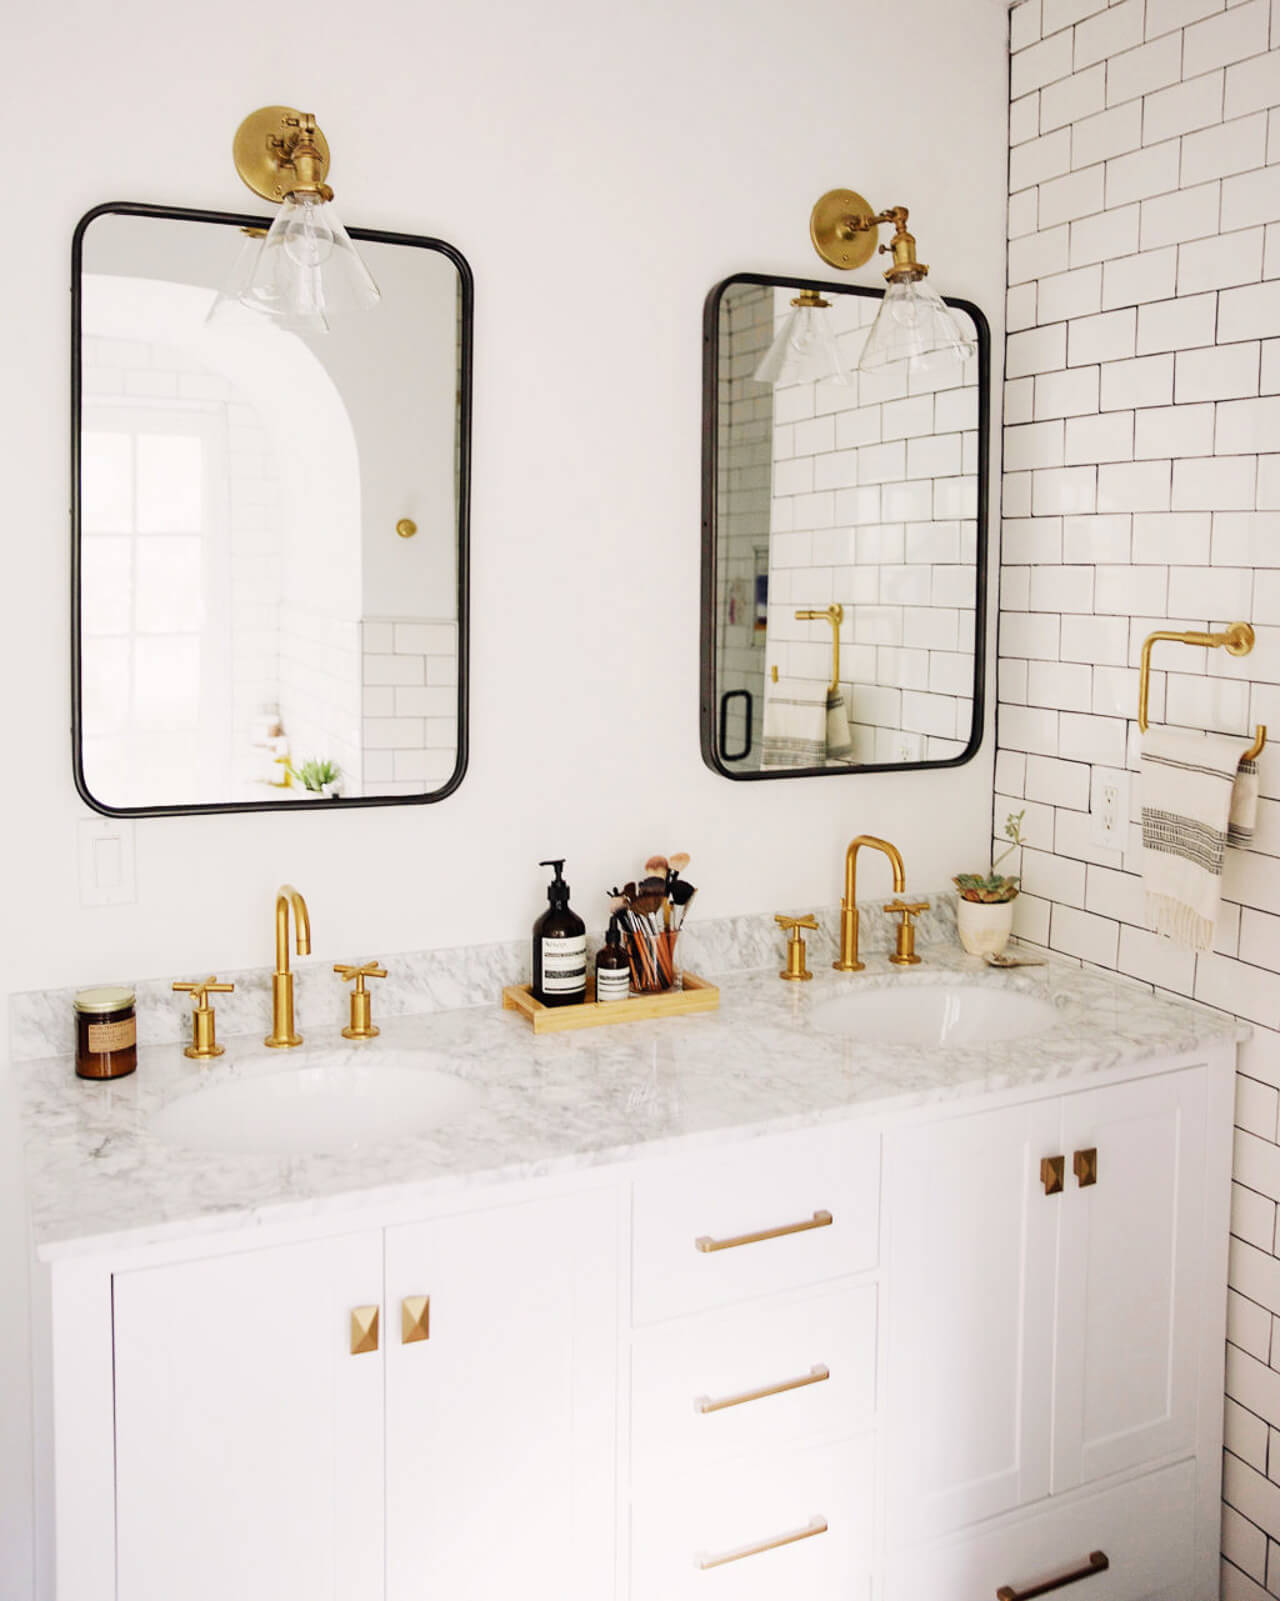 Who can resist gold and marble bathroom decor?! - M Loves M @marmar